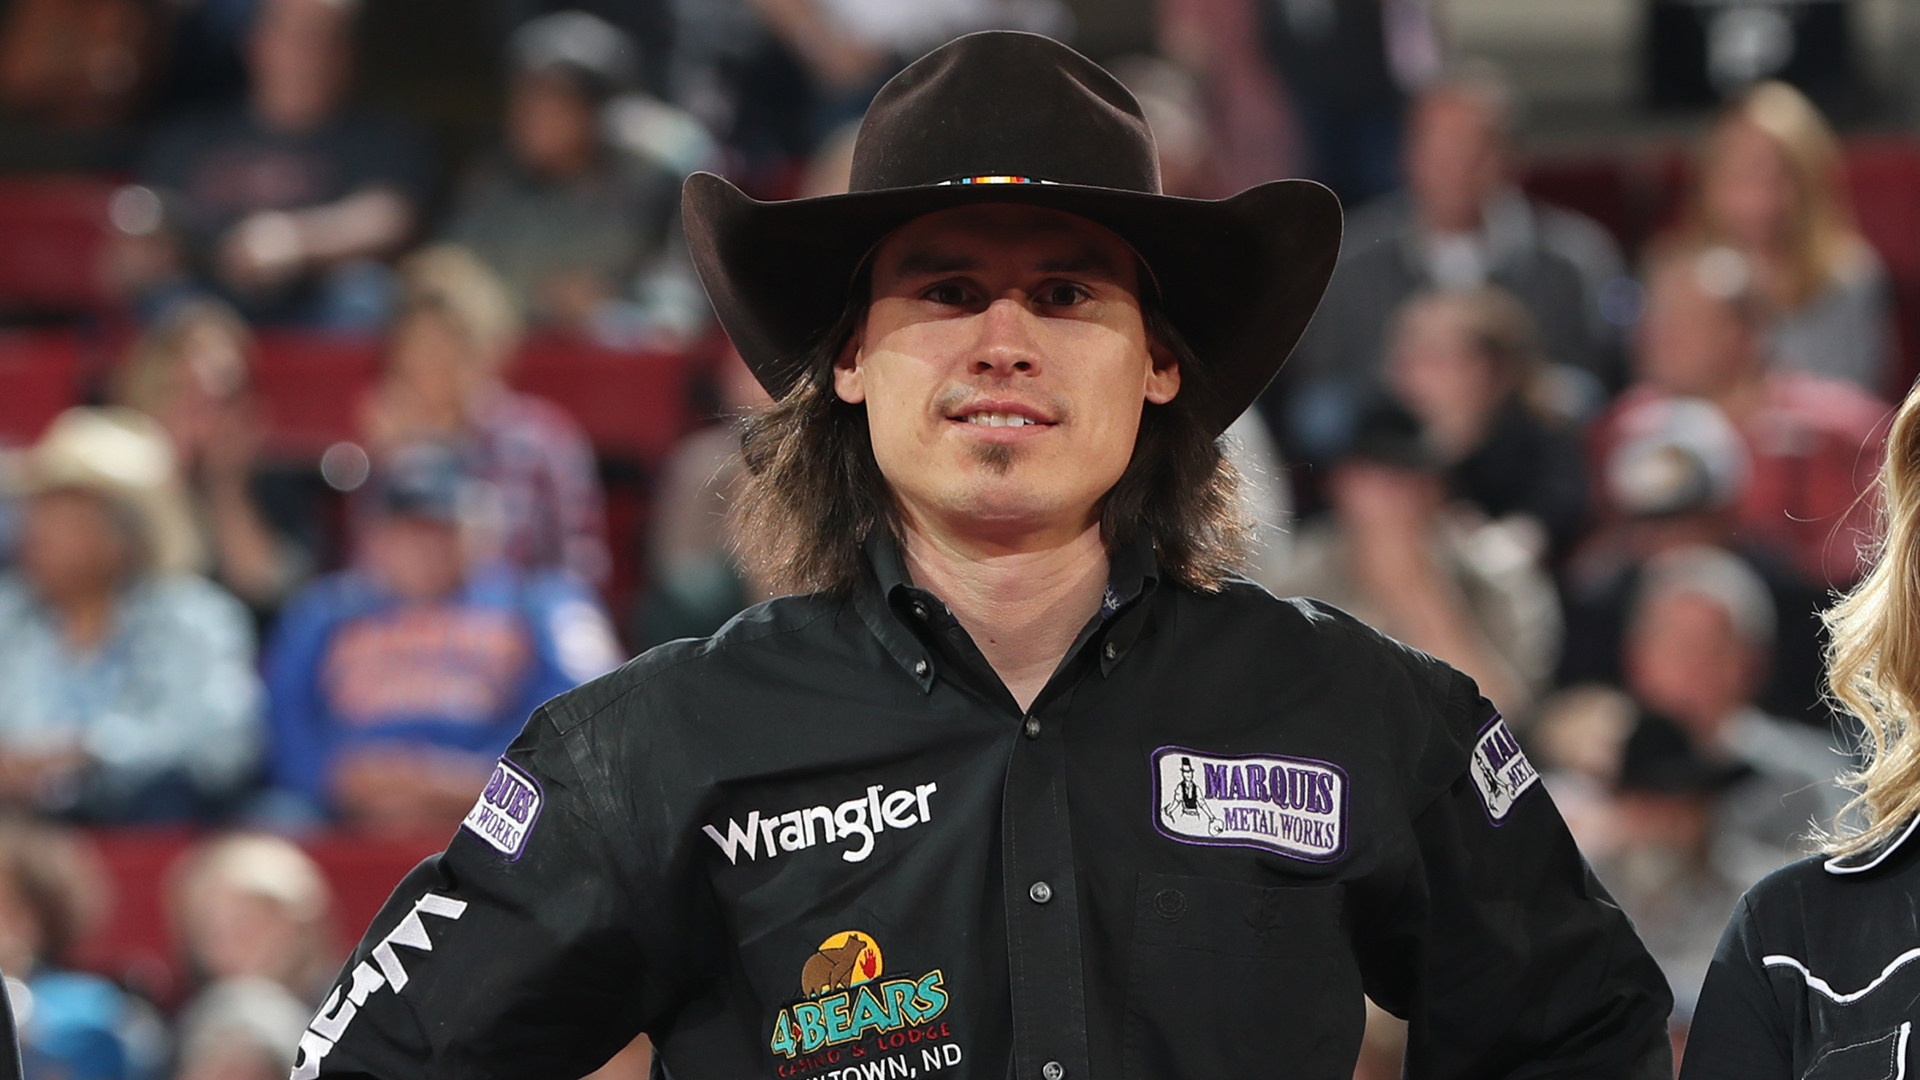 Lawrence earns round win in Billings, moves into Top 20 of world standings